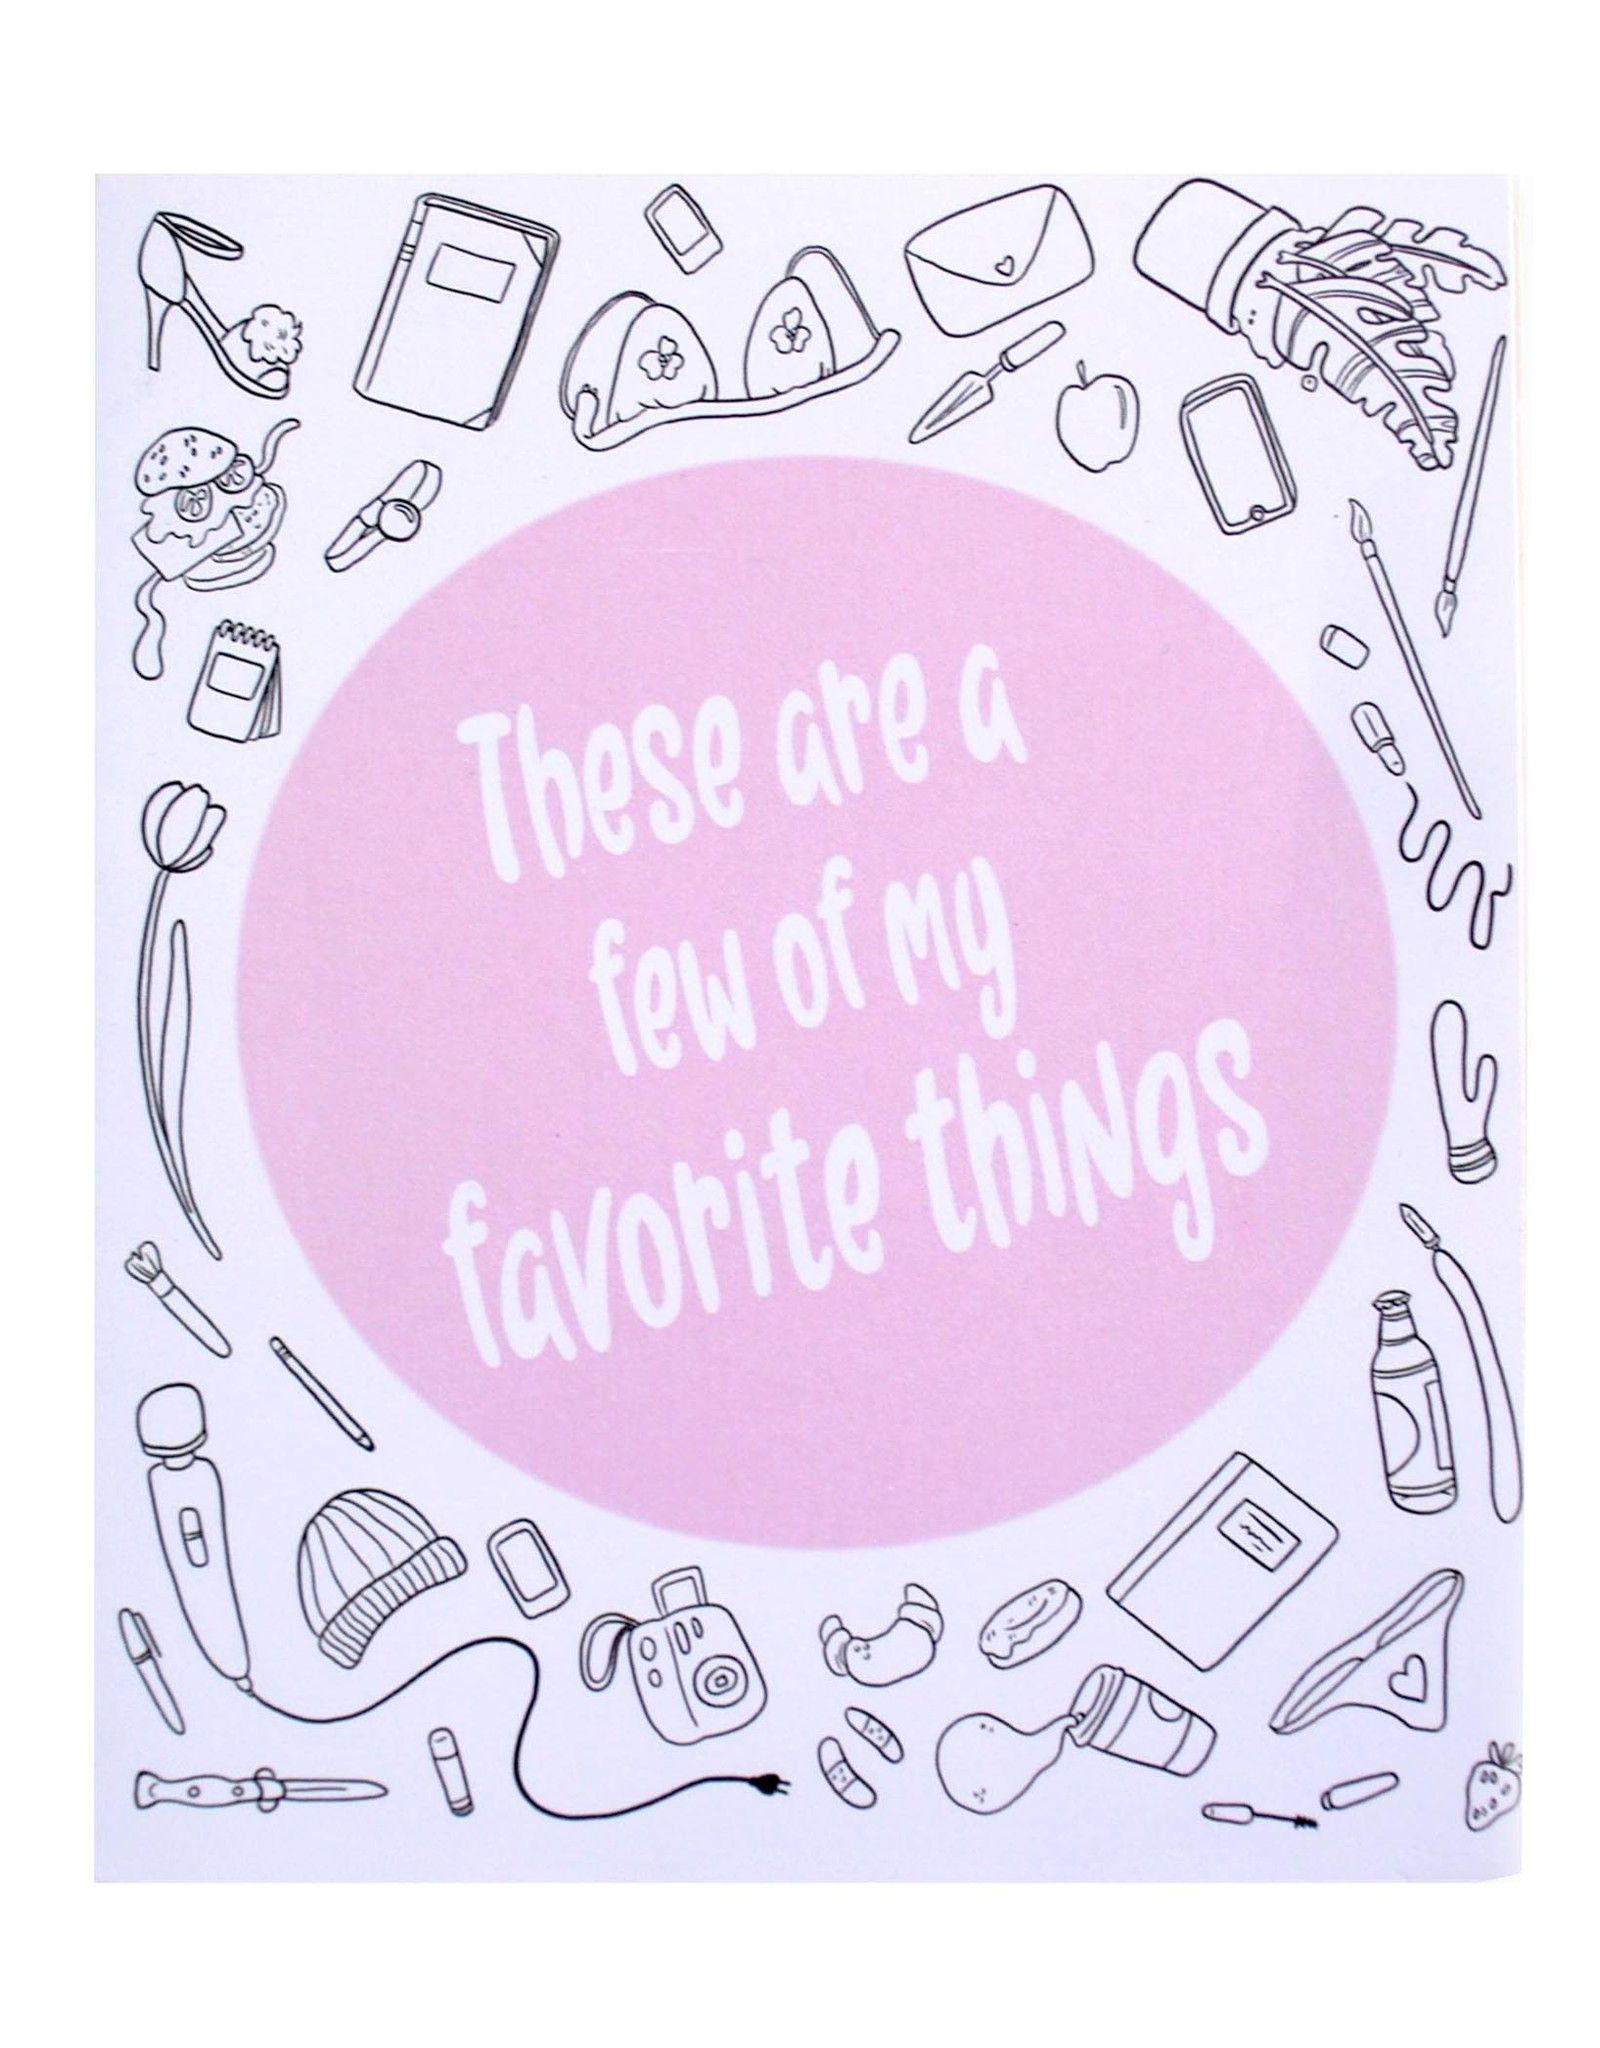 """Mel Valentine """"These Are a Few of My Favorite Things"""" zine by Mel Valentine"""